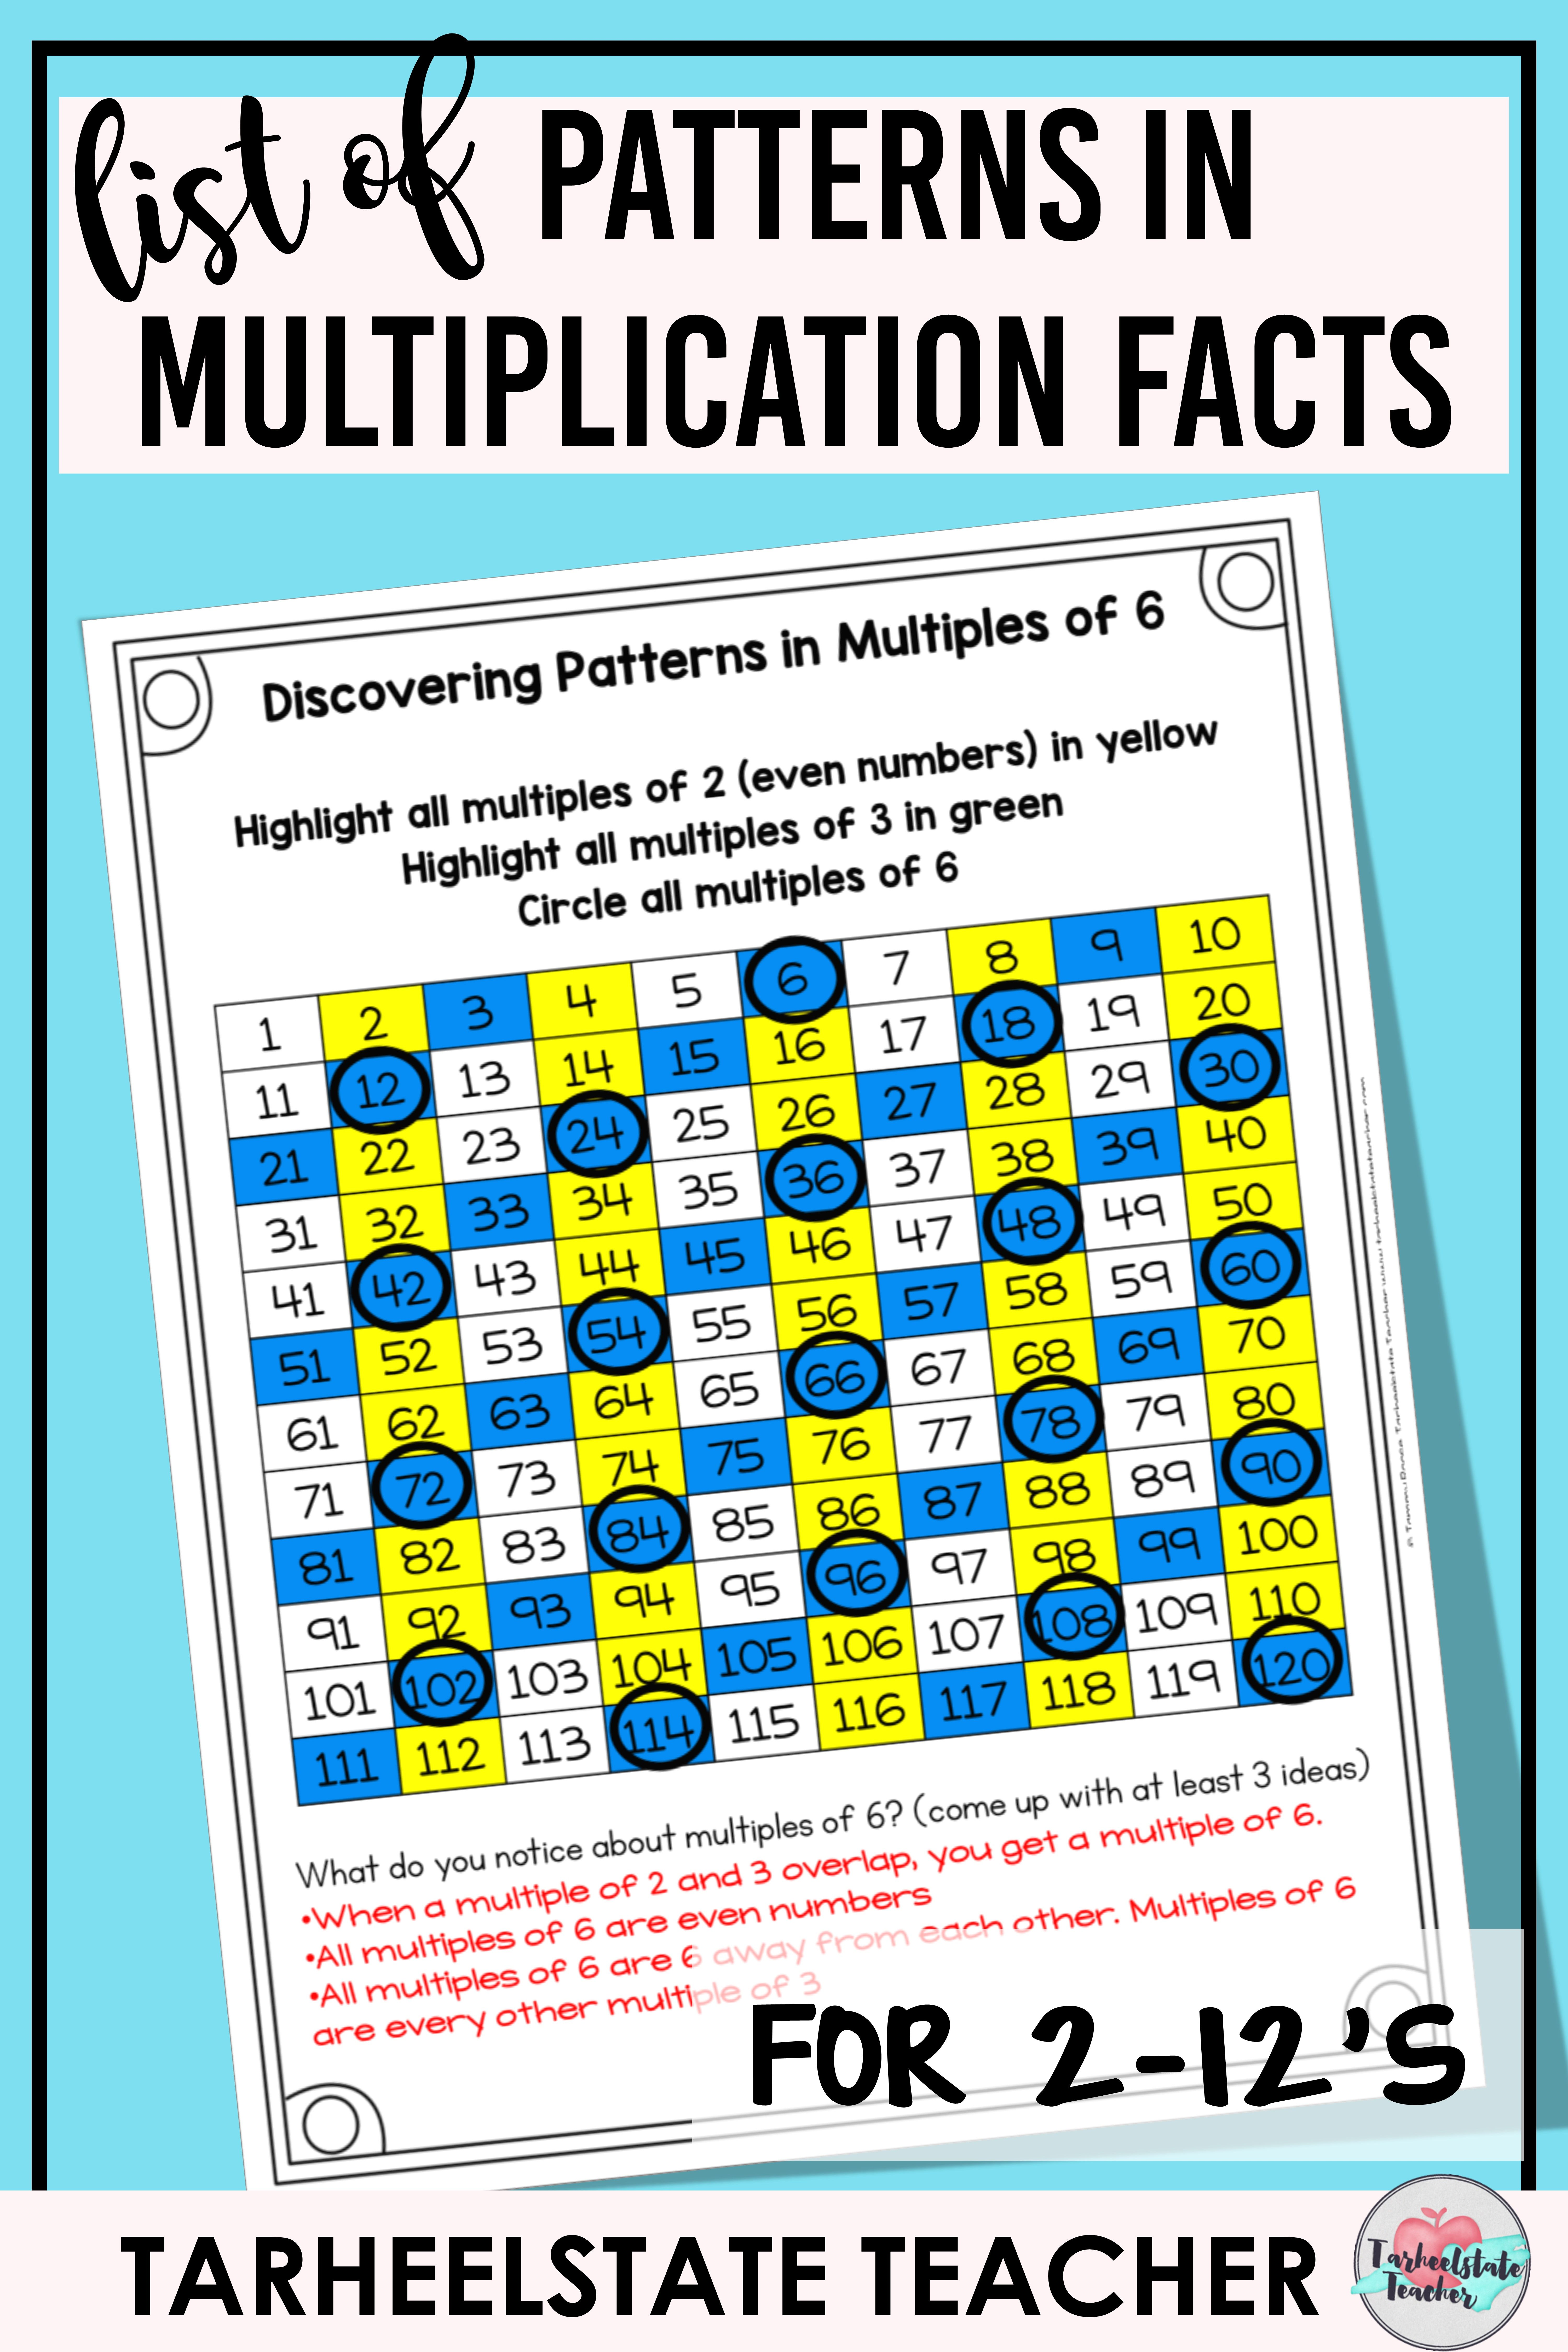 Multiplication Patterns In Times Tables